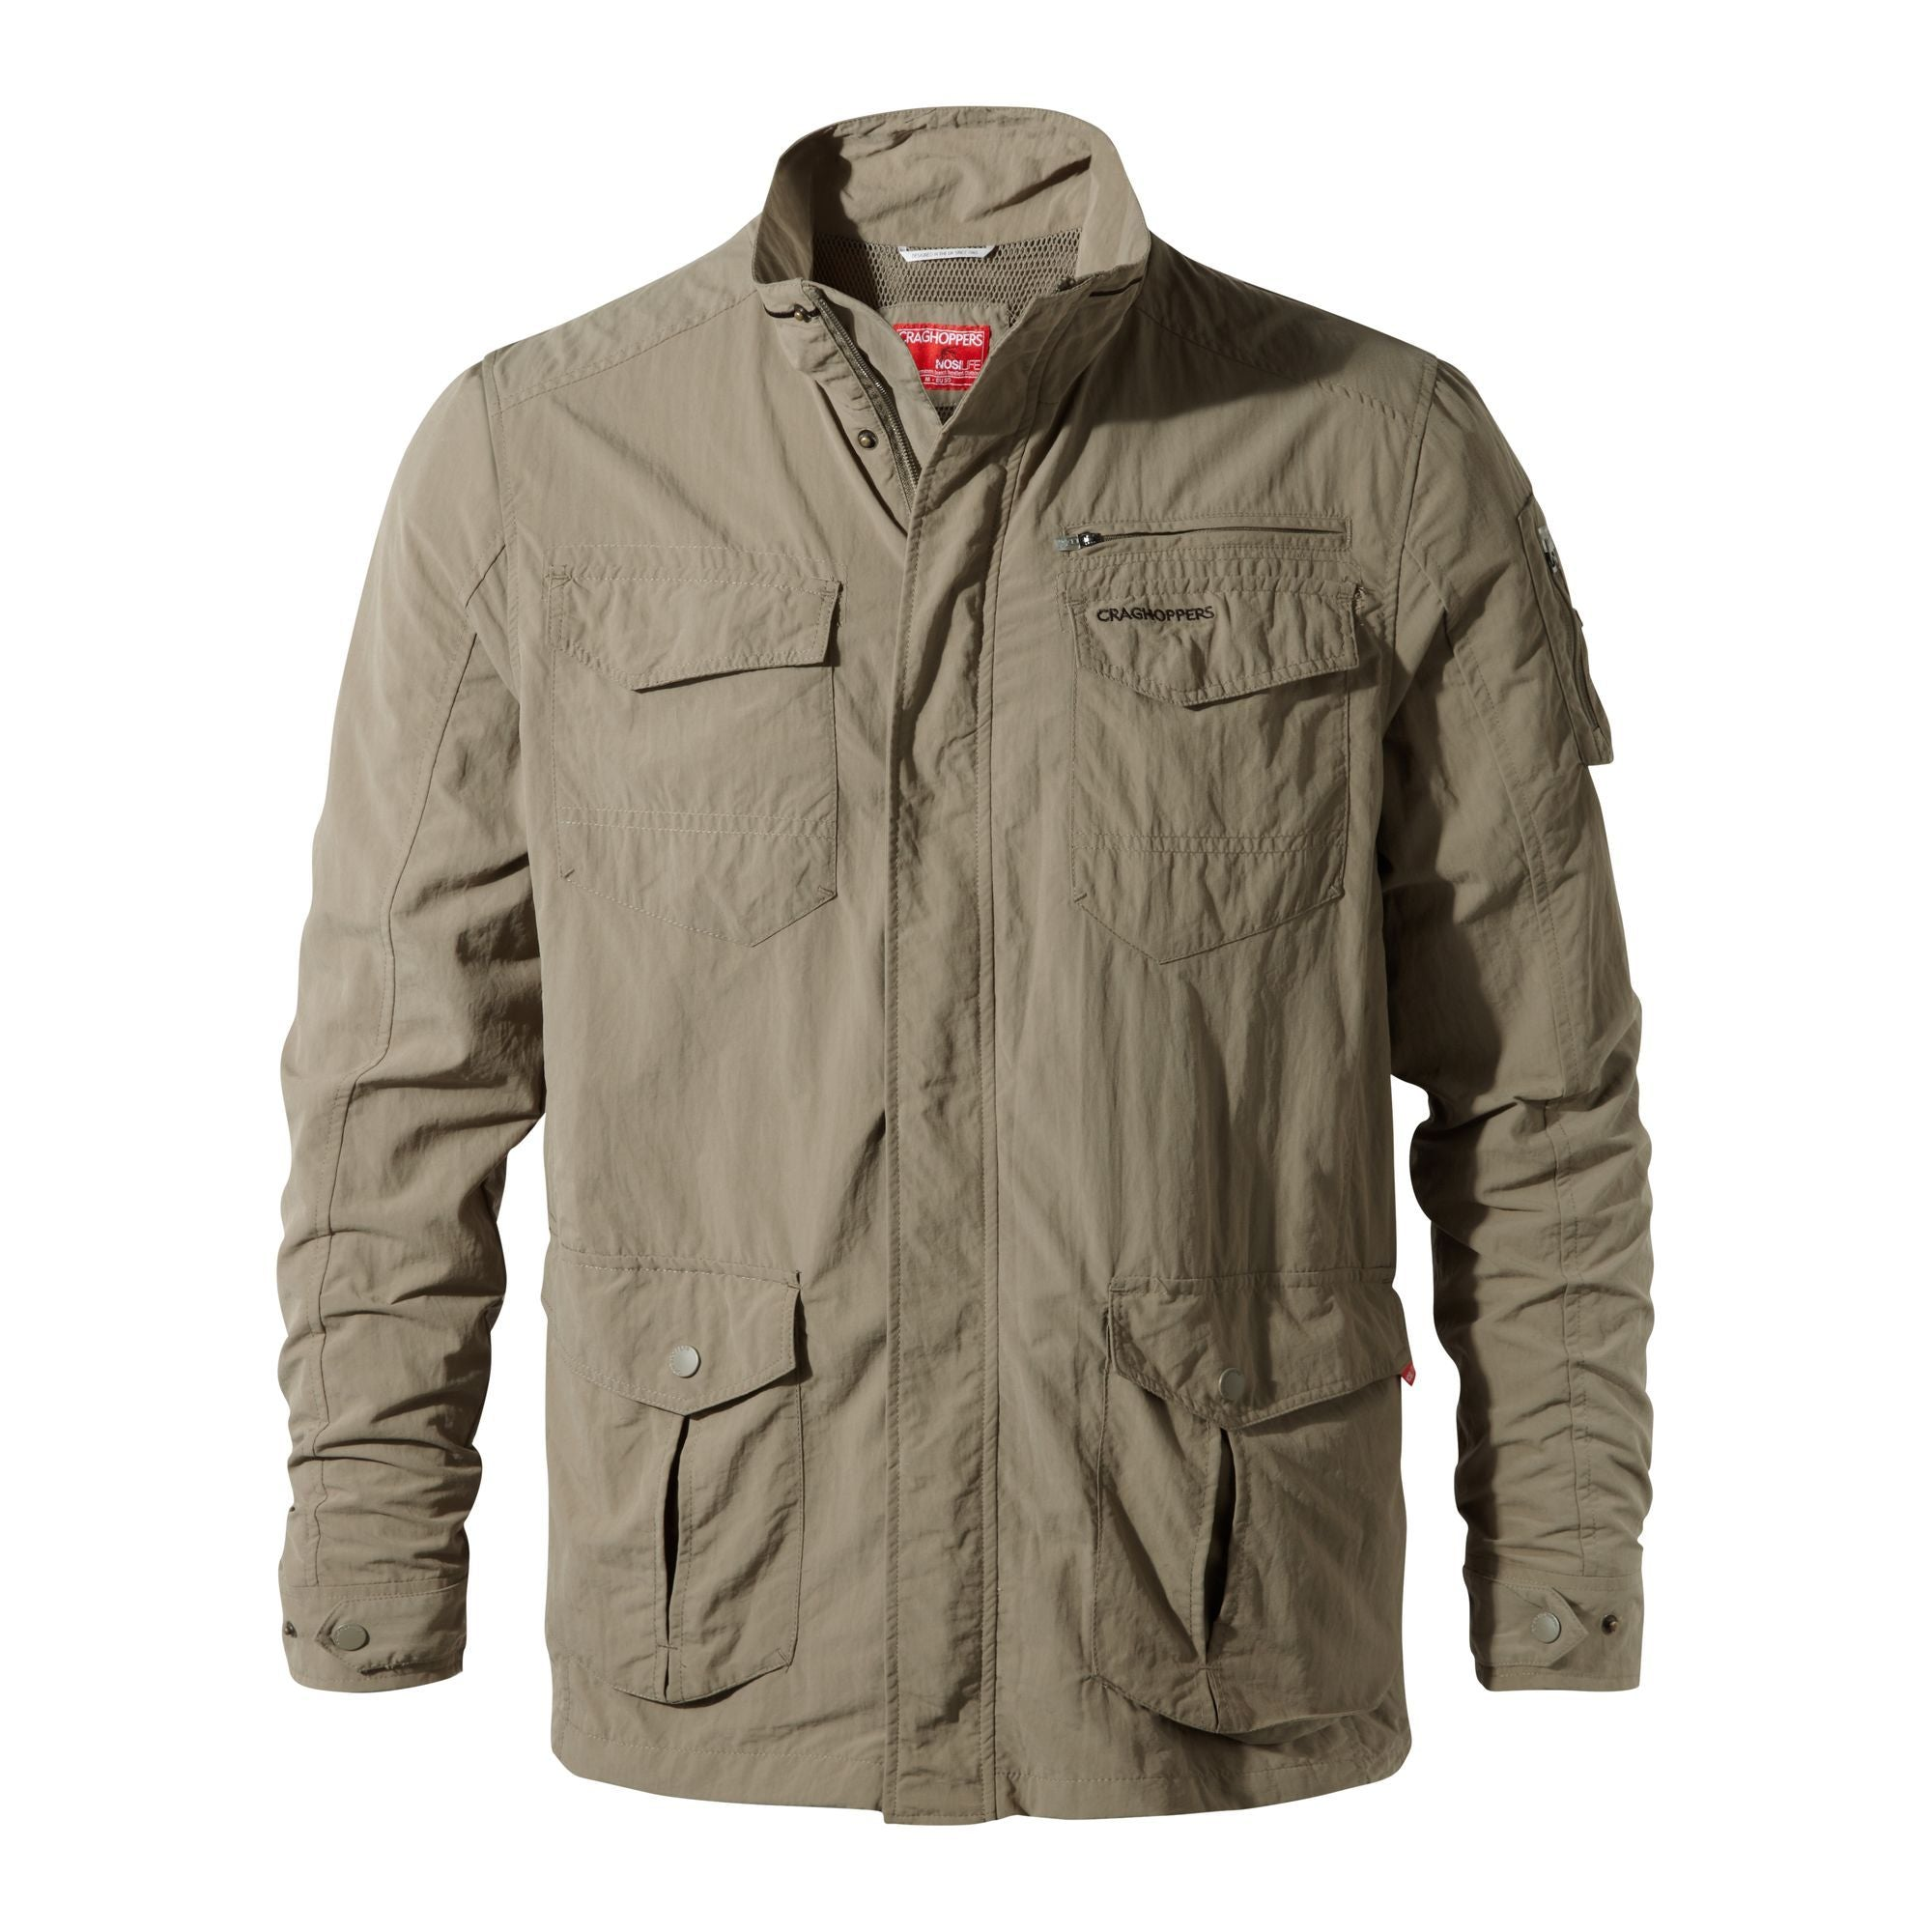 Craghoppers Adventure Jacket for Men in Pebble